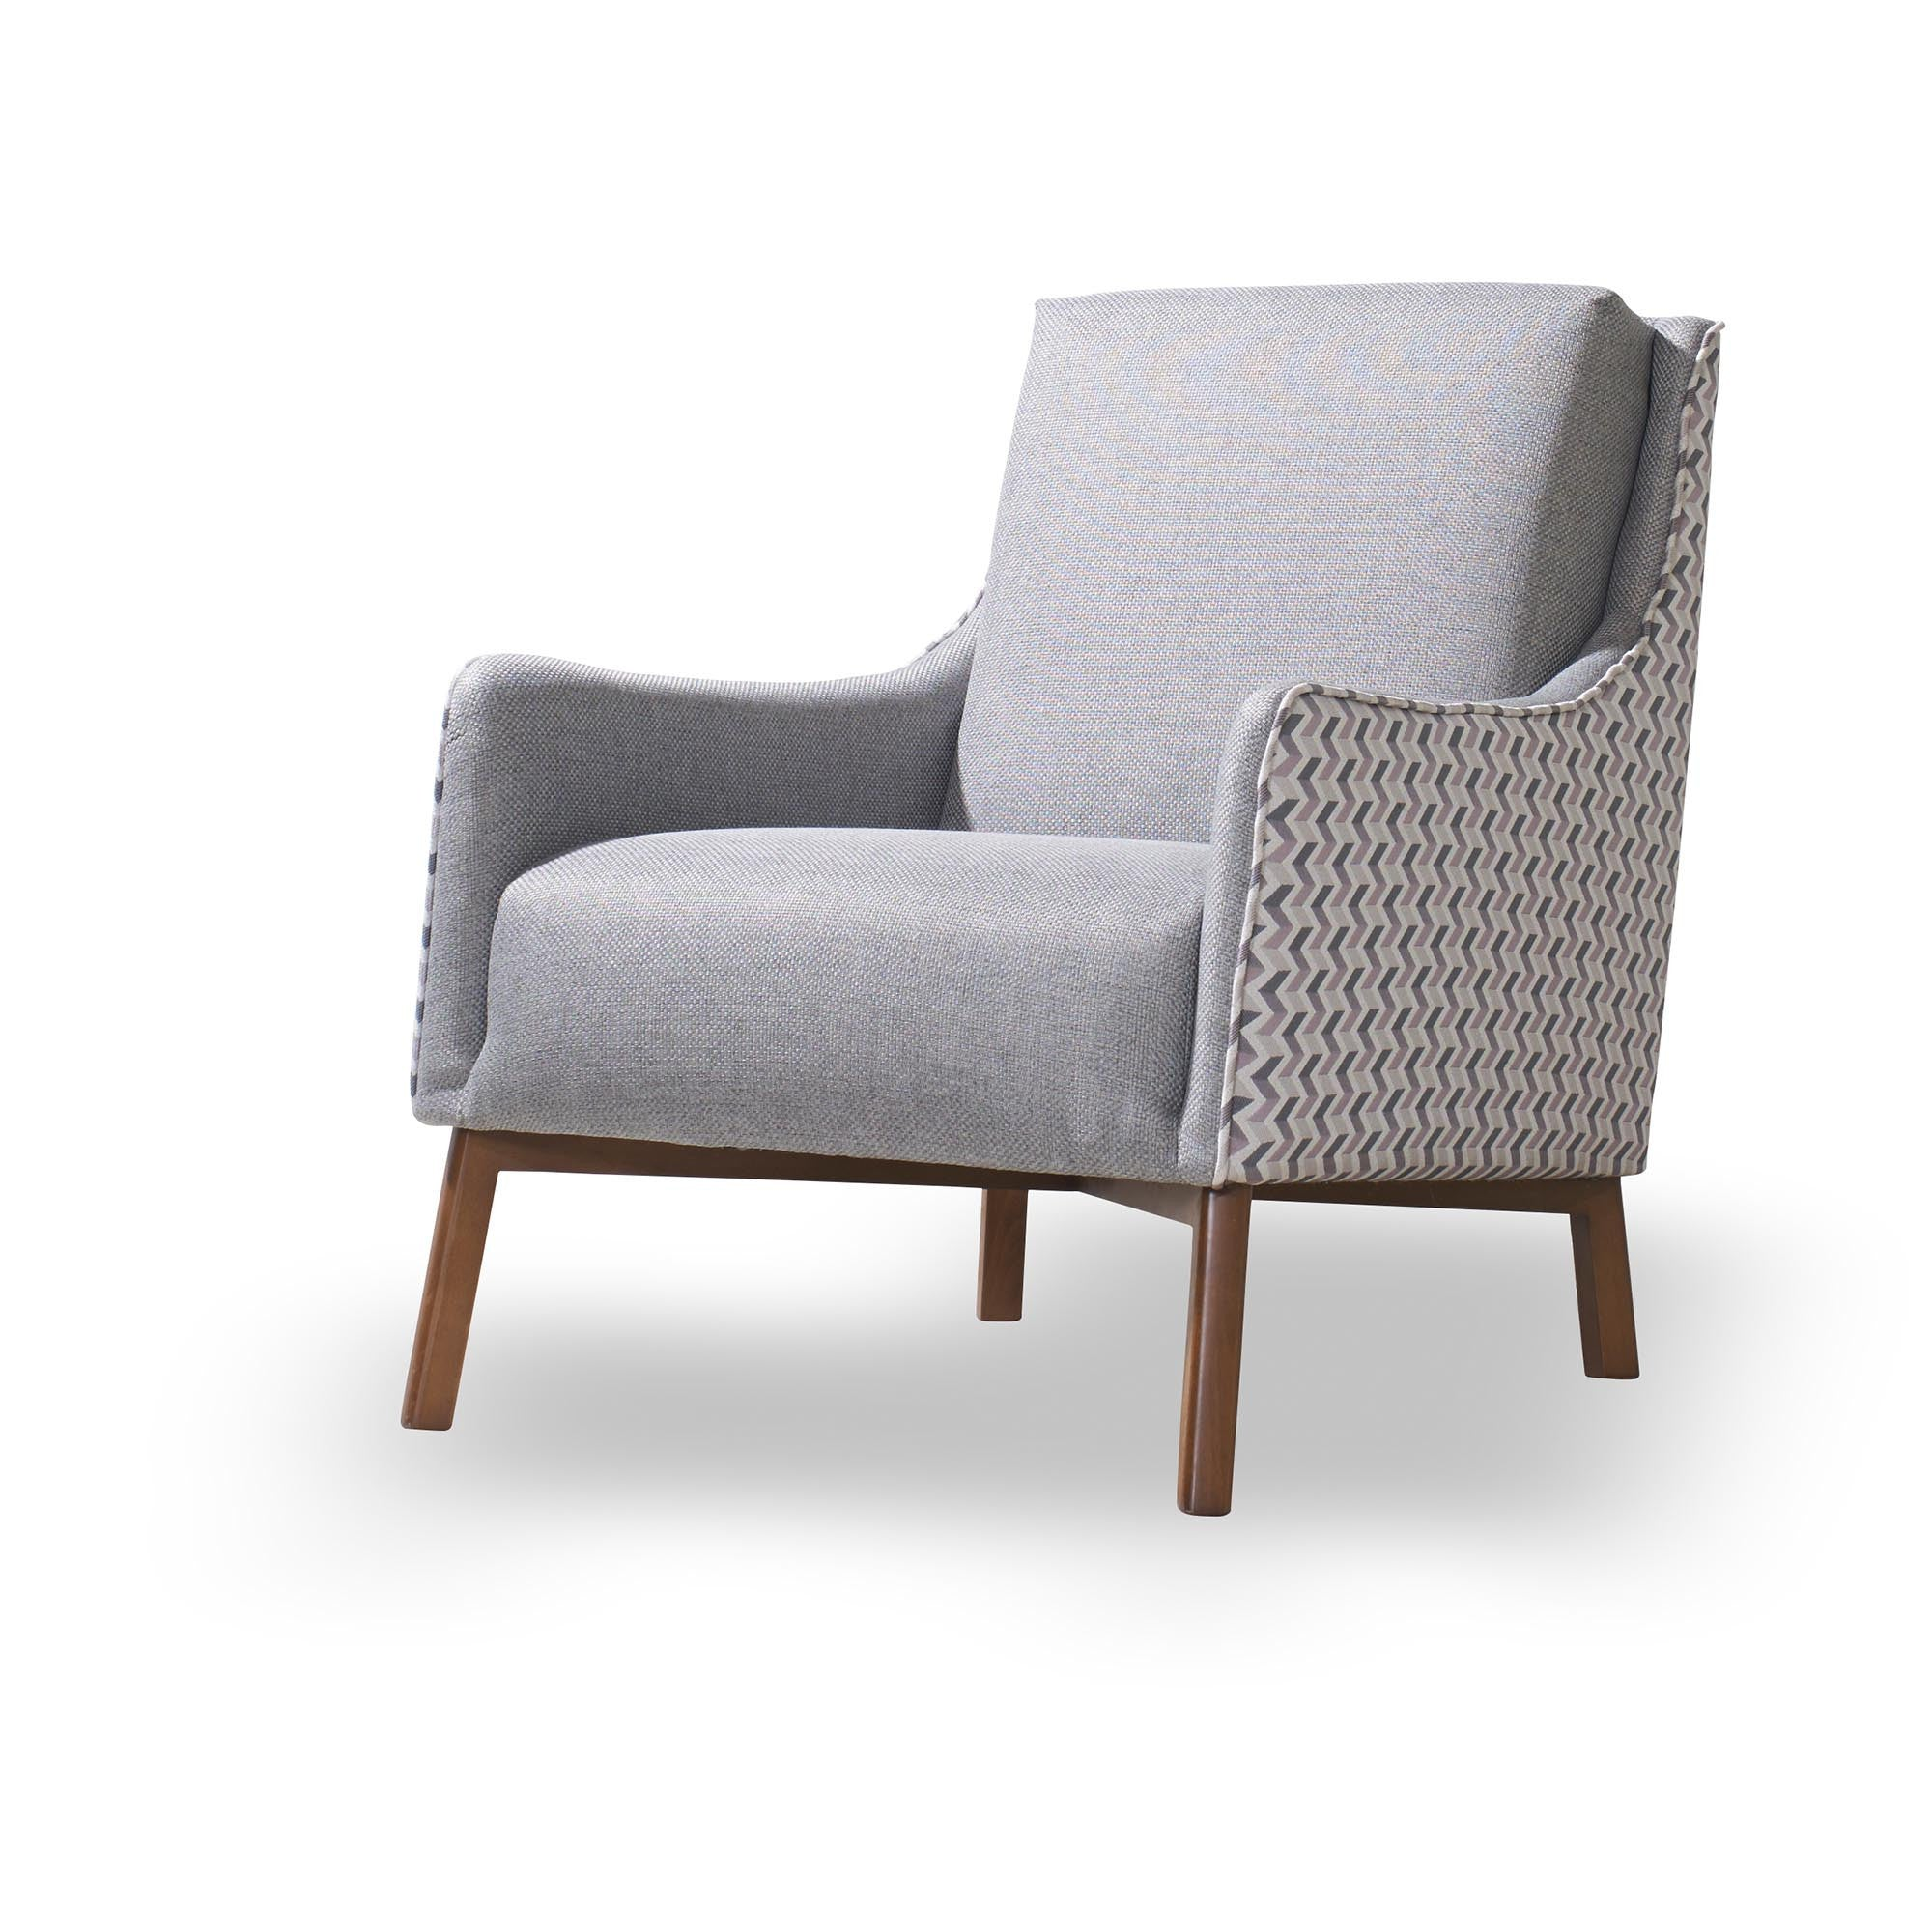 PRE-ORDER 60 DAYS DELIVERY Turin Lounge Armchair   ISTANB001S-lounge - ebarza